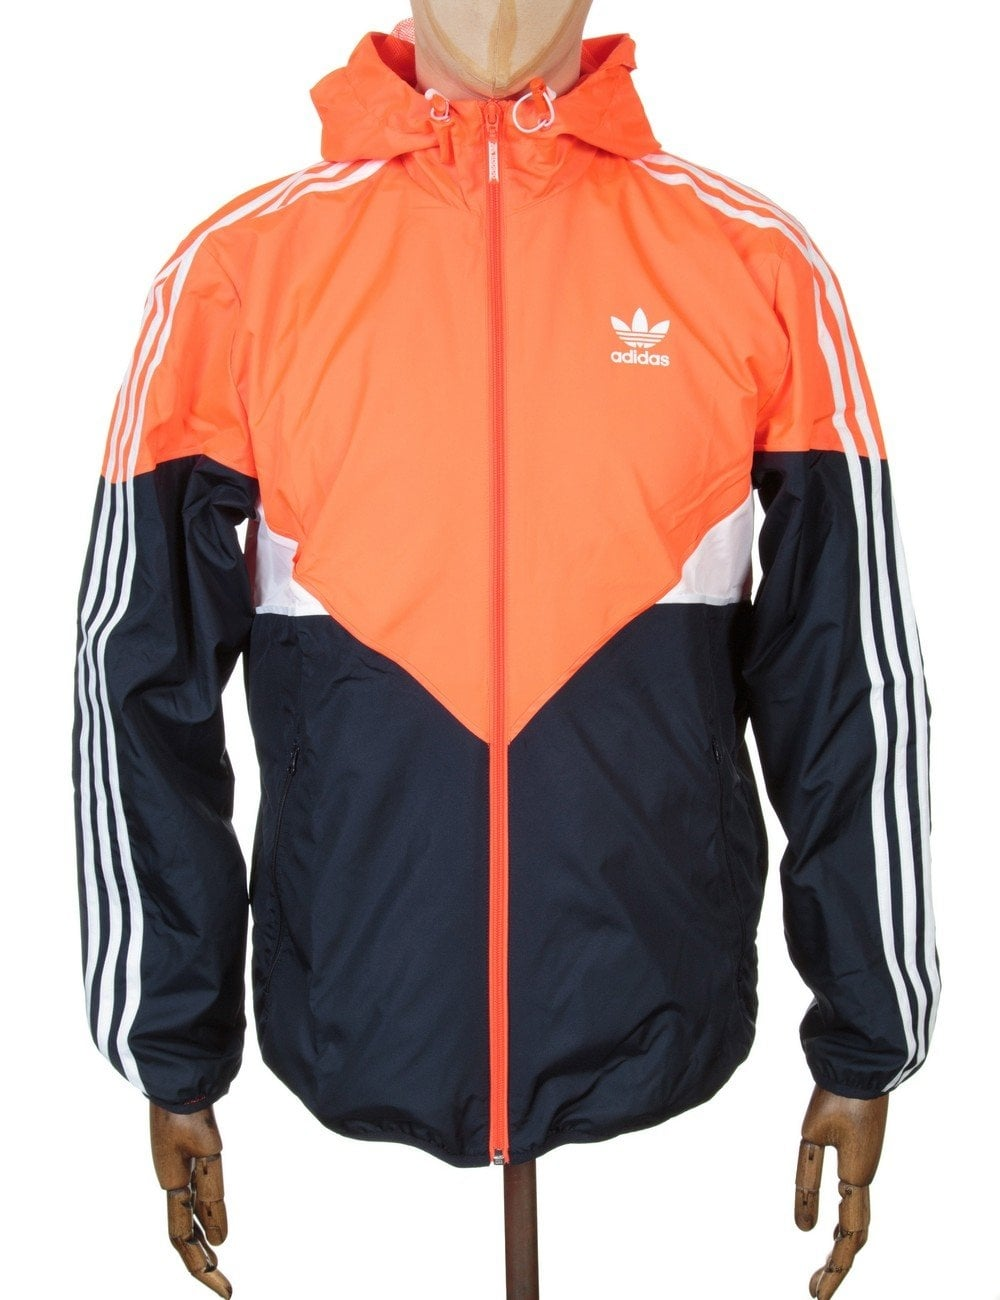 52af674be Adidas Originals Colorado Windbreaker Jacket - Solar Red - Clothing ...